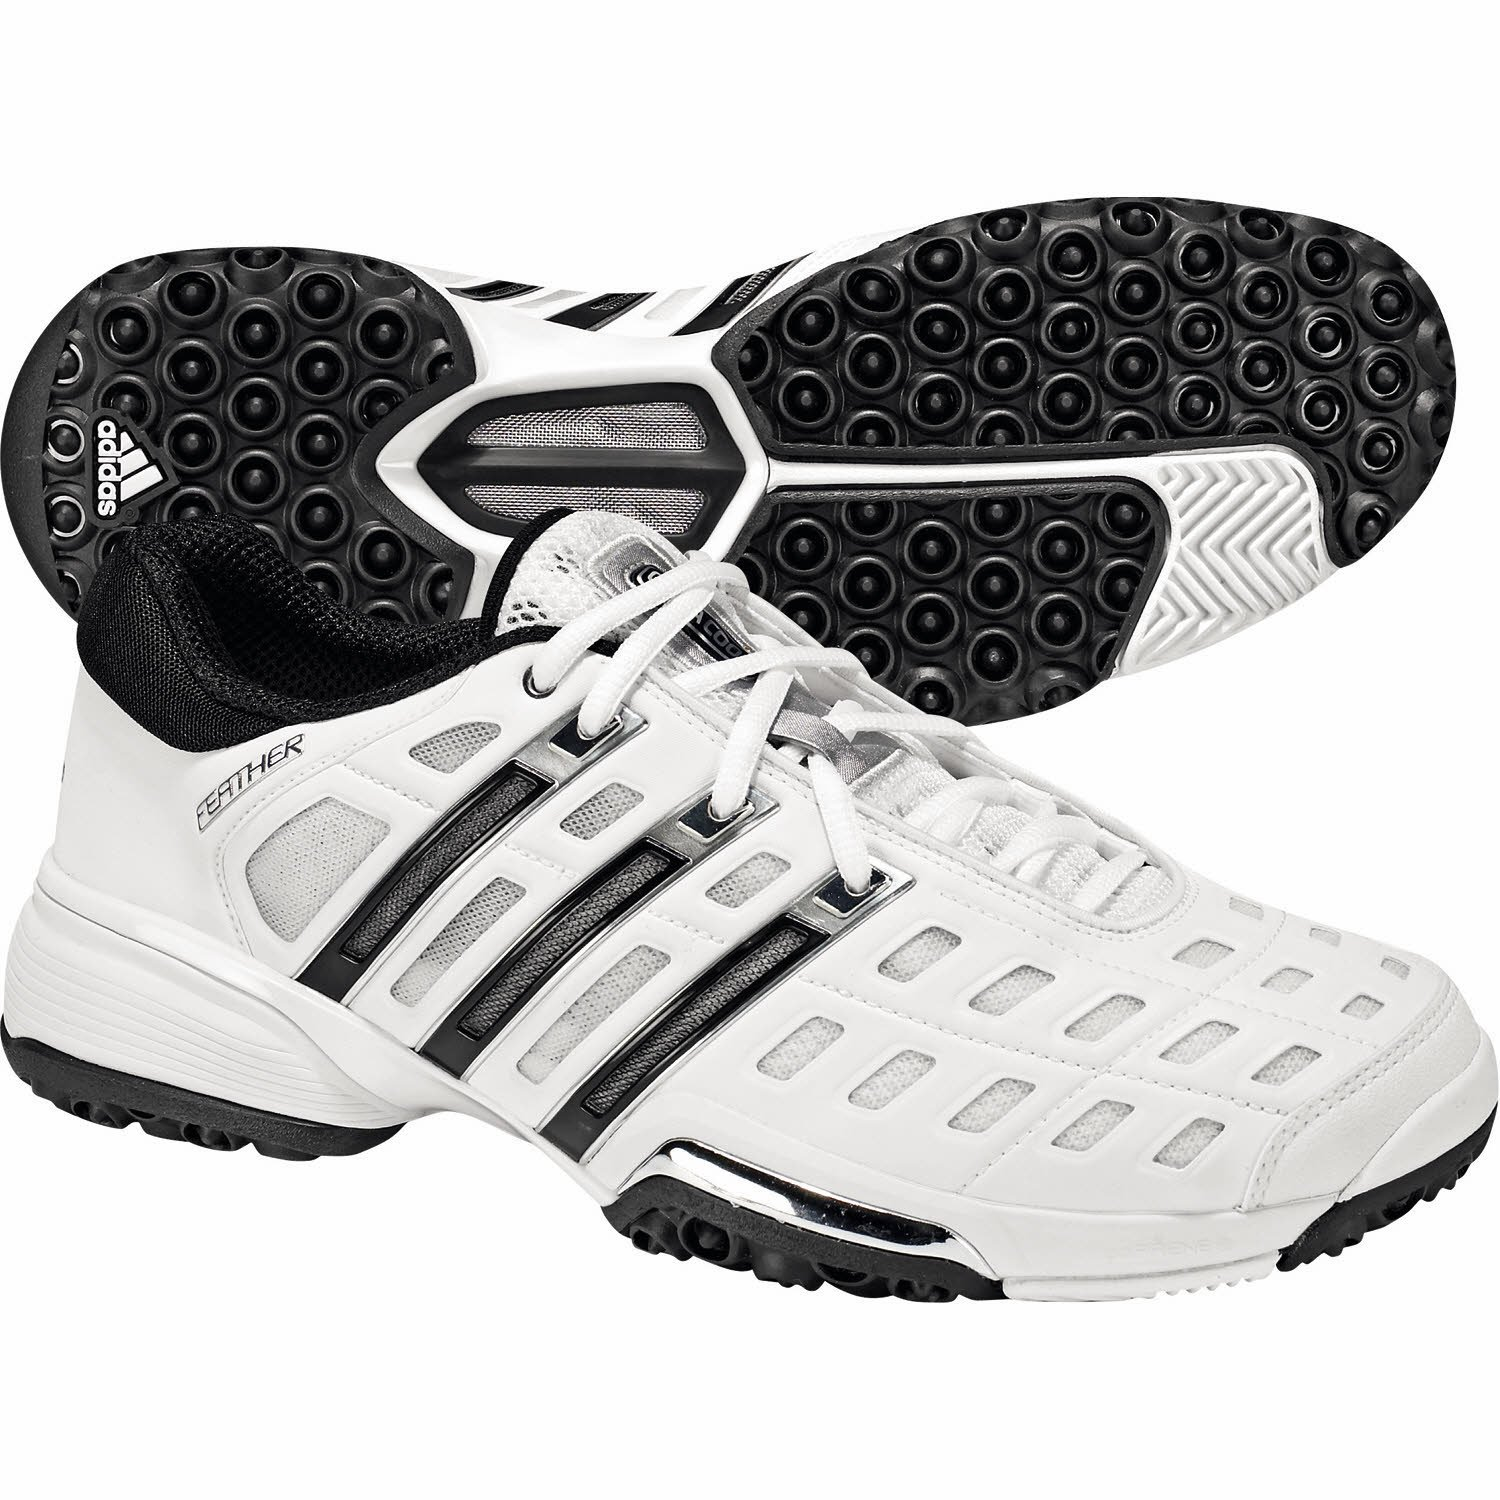 Adidas Herren-Tennisschuh CC FEATHER IV (running w